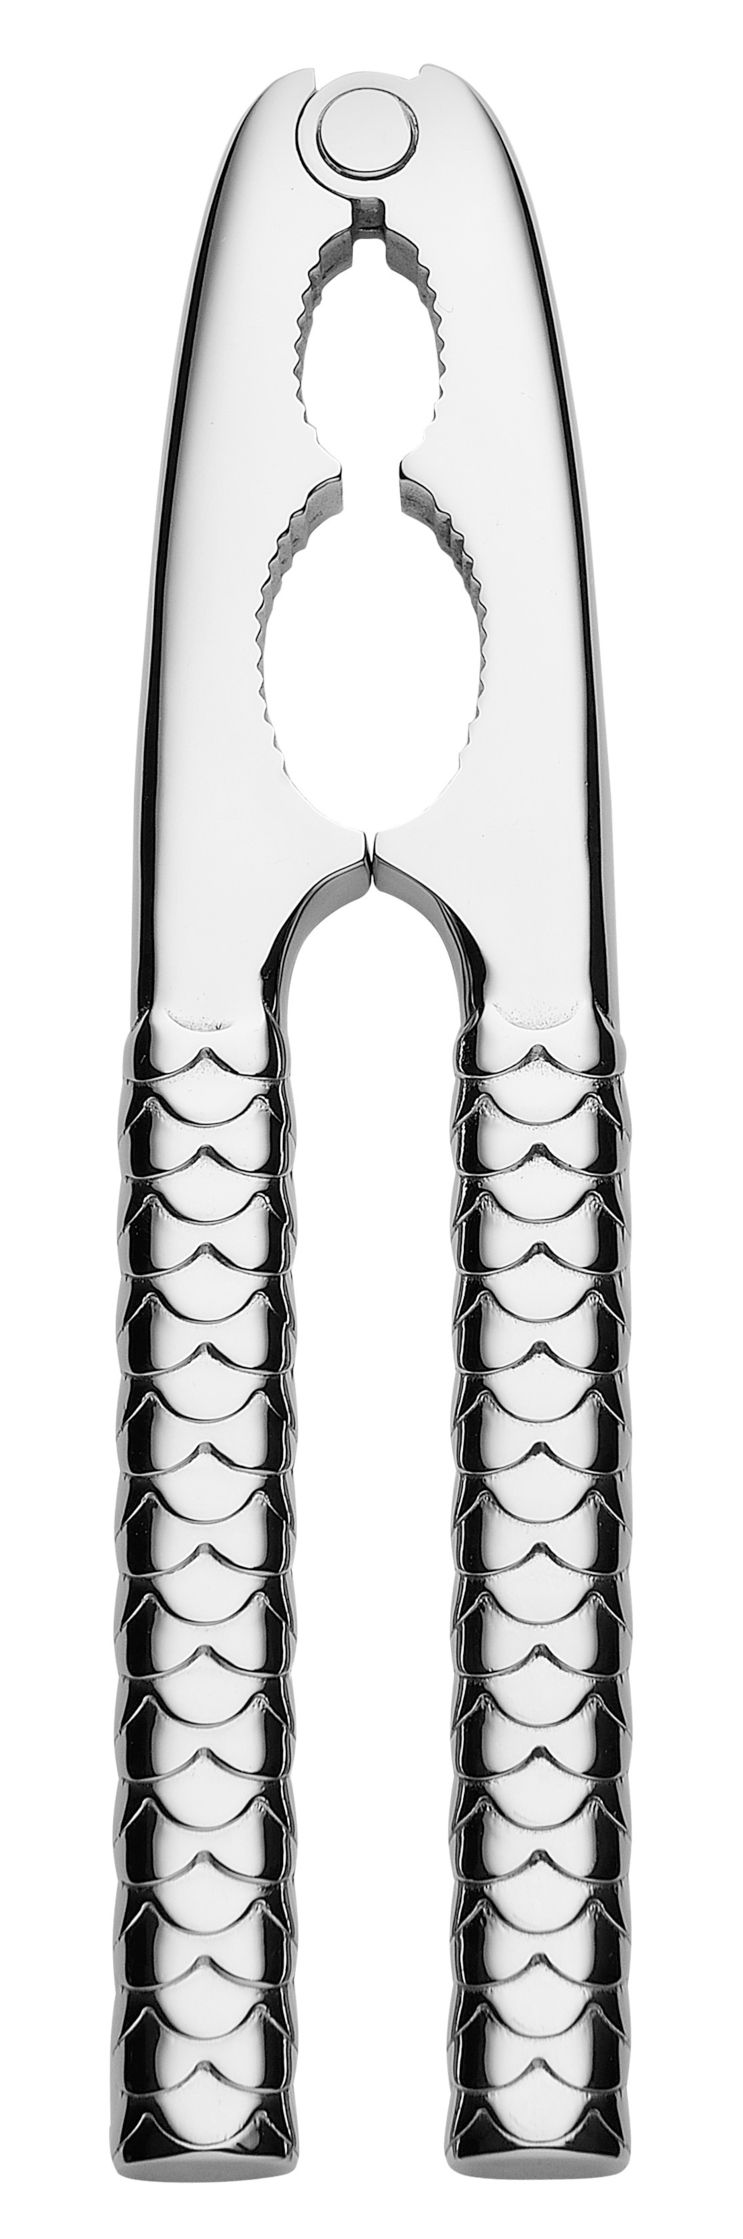 Tableware - Cutlery - Colombina Fish Claw cracker by Alessi - Steel - Stainless steel